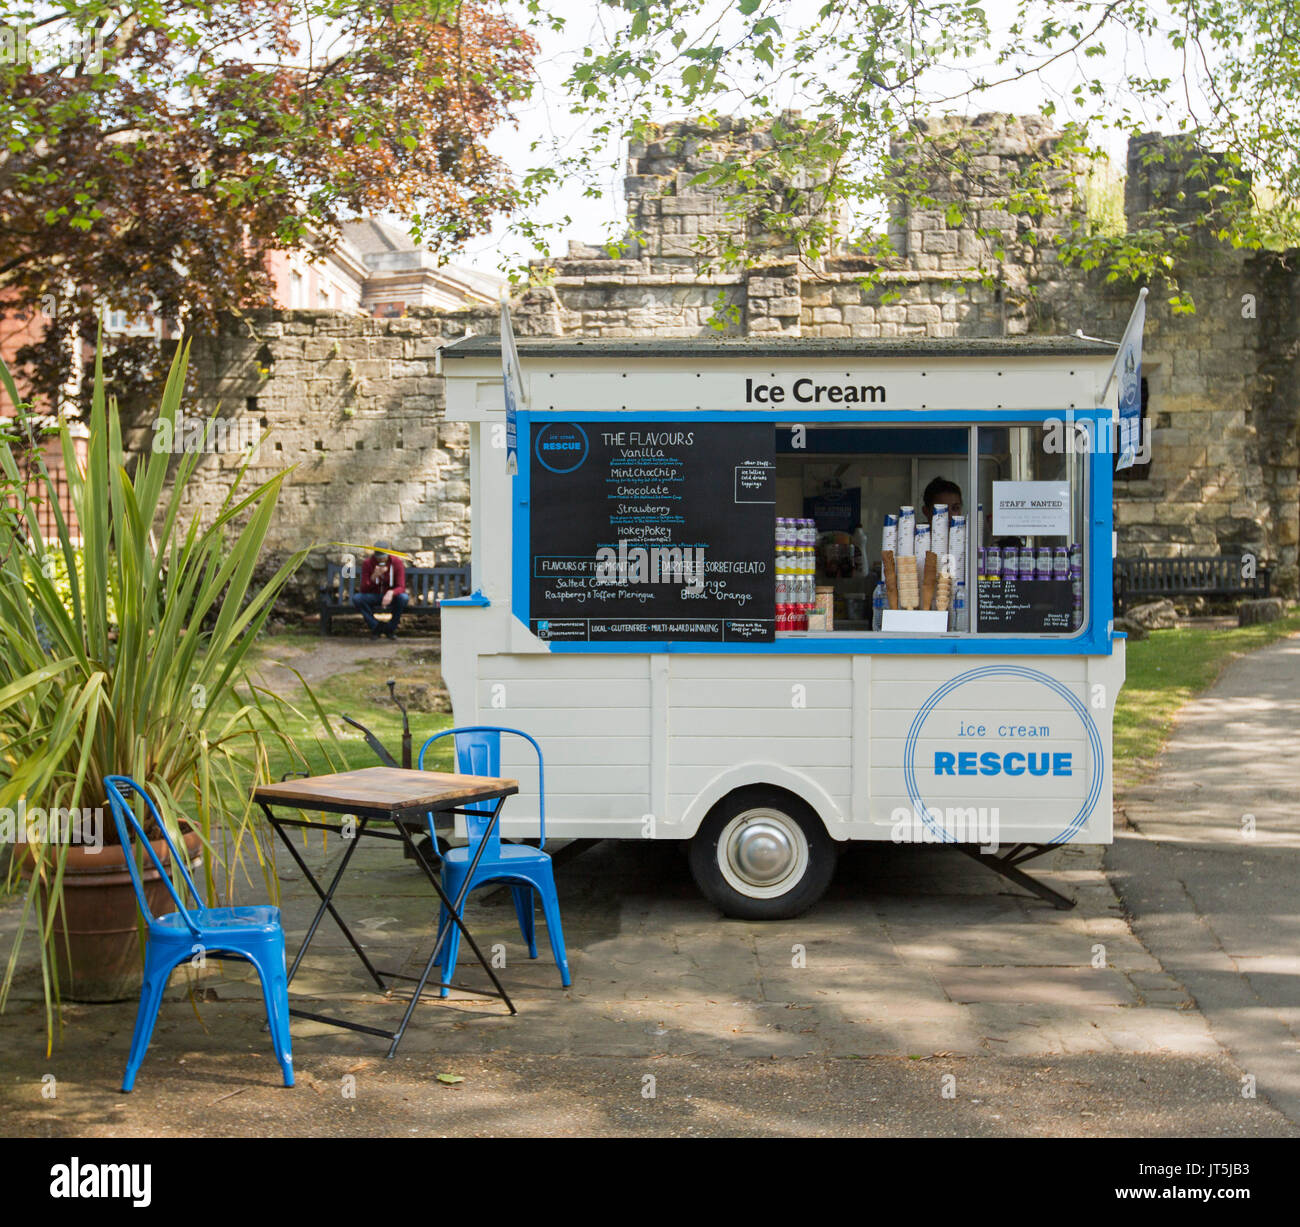 blue and white mobile ice cream van with table and chairs nearby in rh alamy com van with tail lift van with table uk